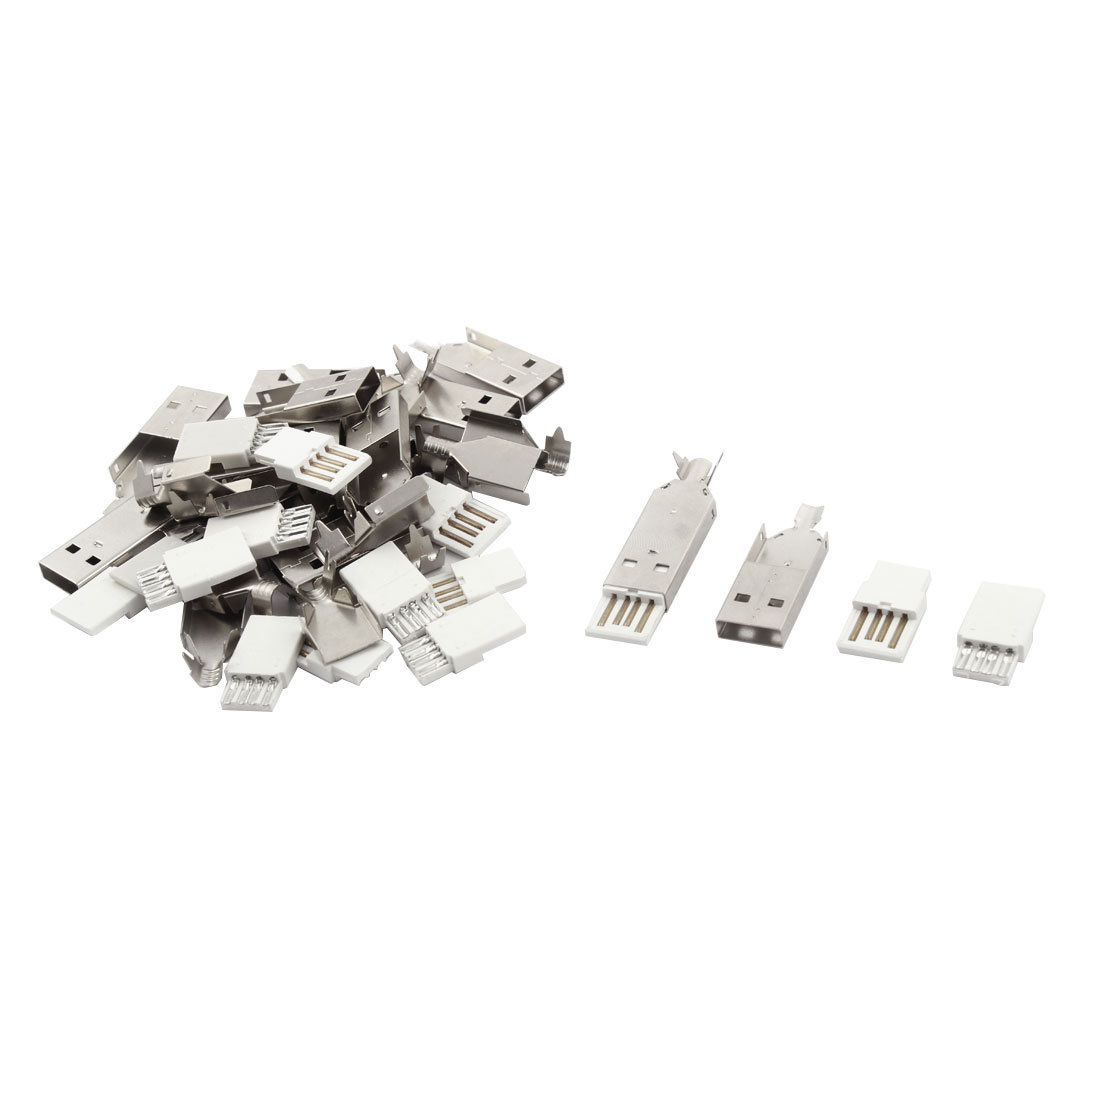 Type A USB Male Jack Connector Solder Adapter Metal Cover Repair Kit 15sets